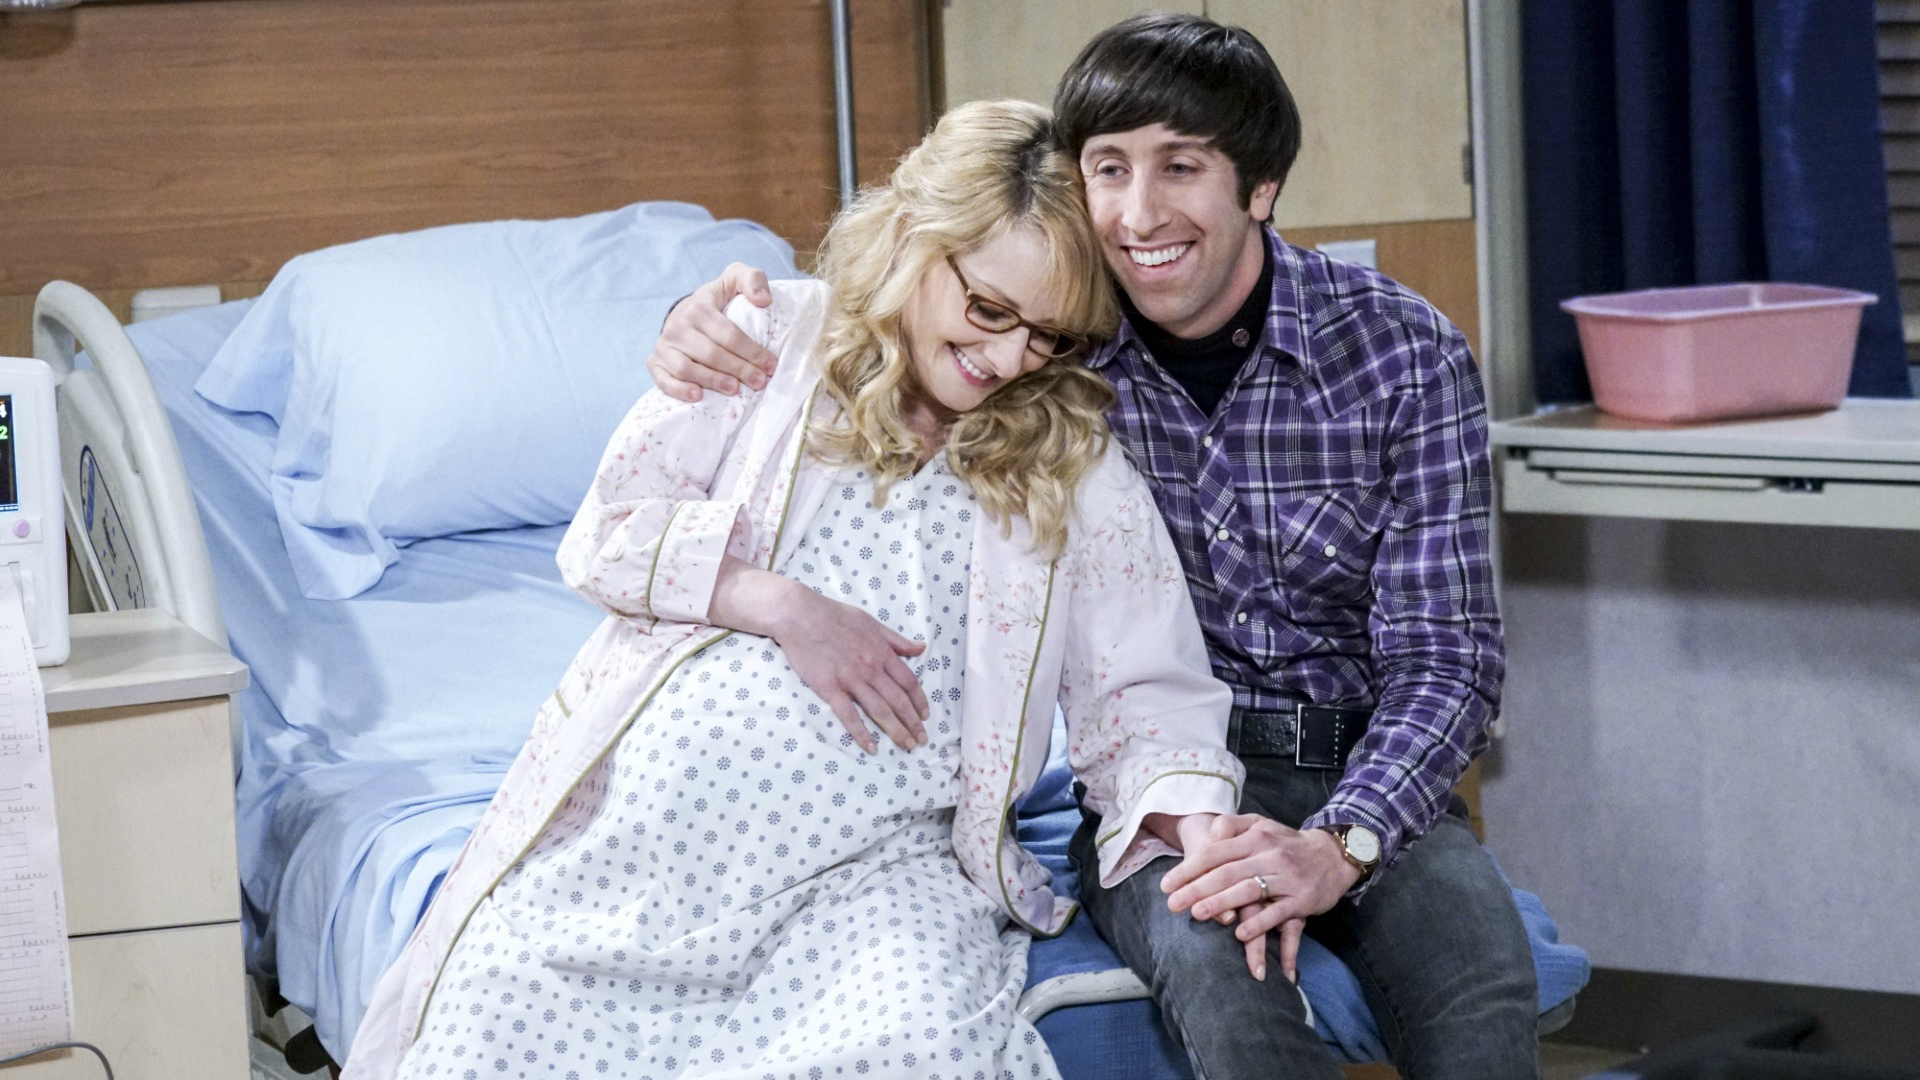 The excitement about the baby's birth kicks in for the Wolowitz family!